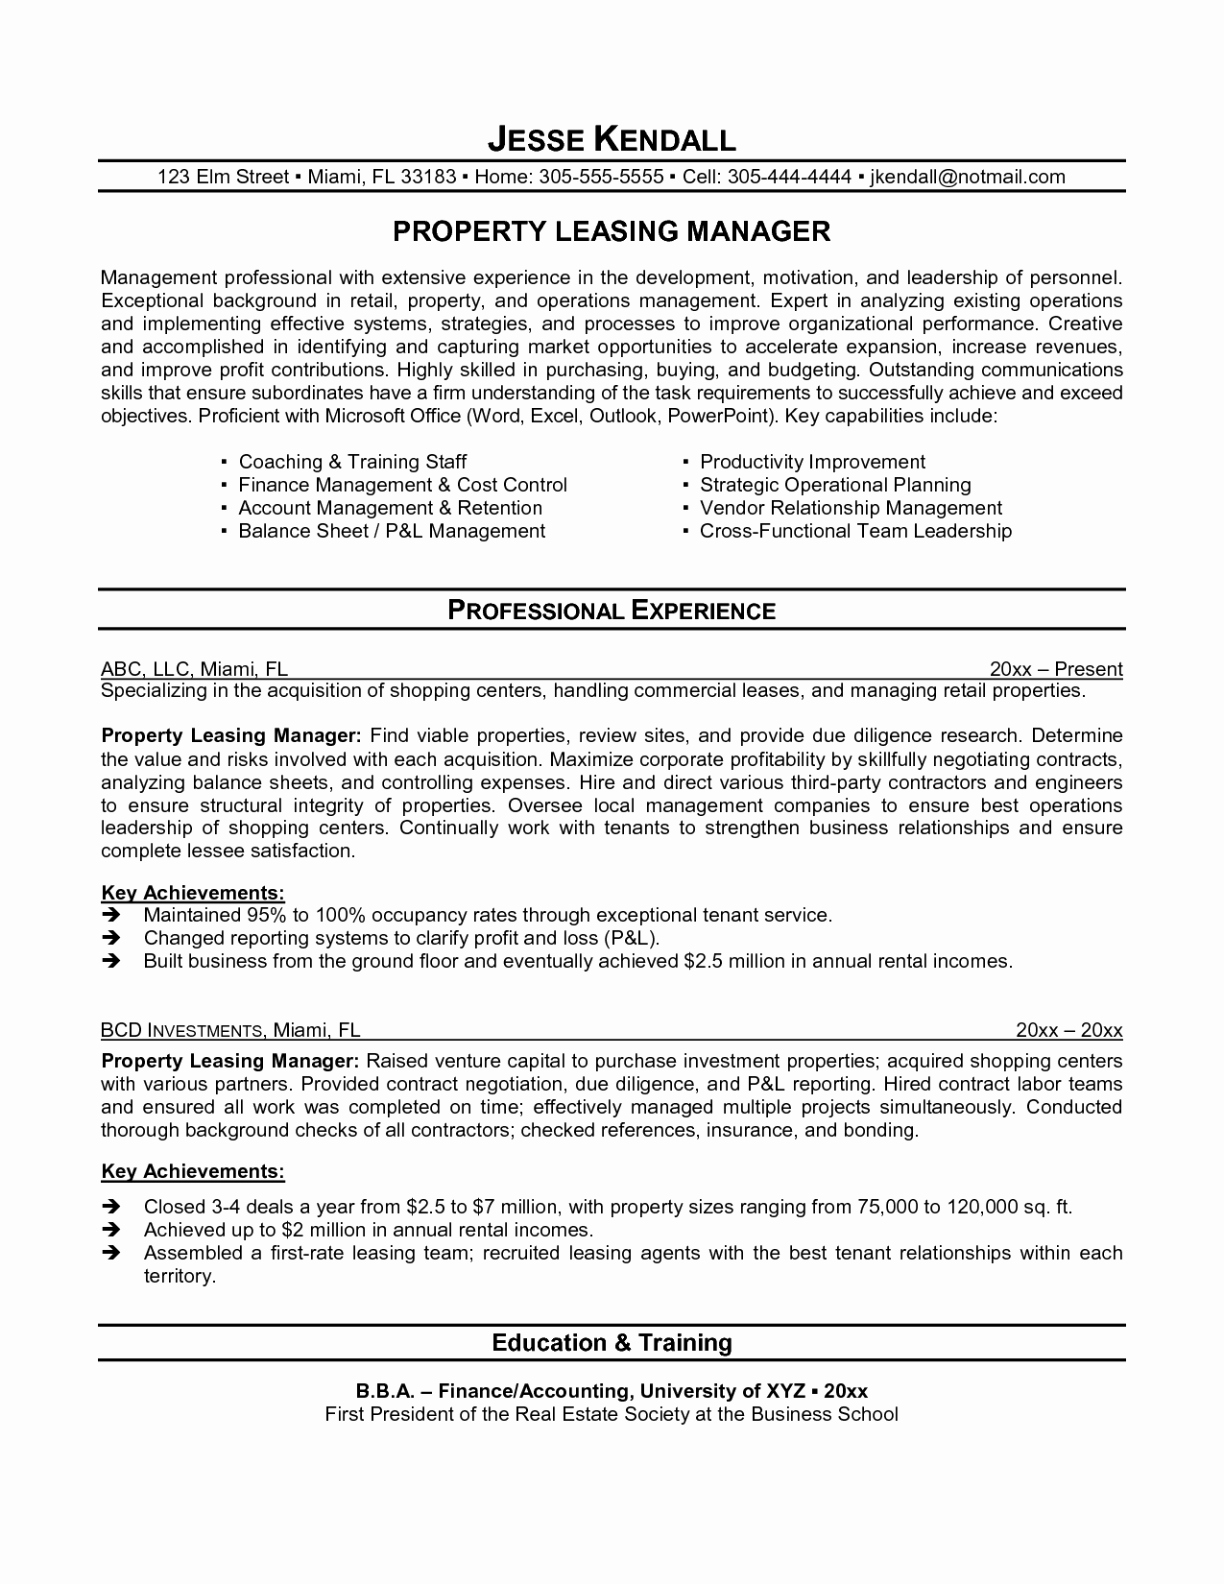 Real Estate Commission Letter Template - Real Estate Agent Resume Example Roddyschrock